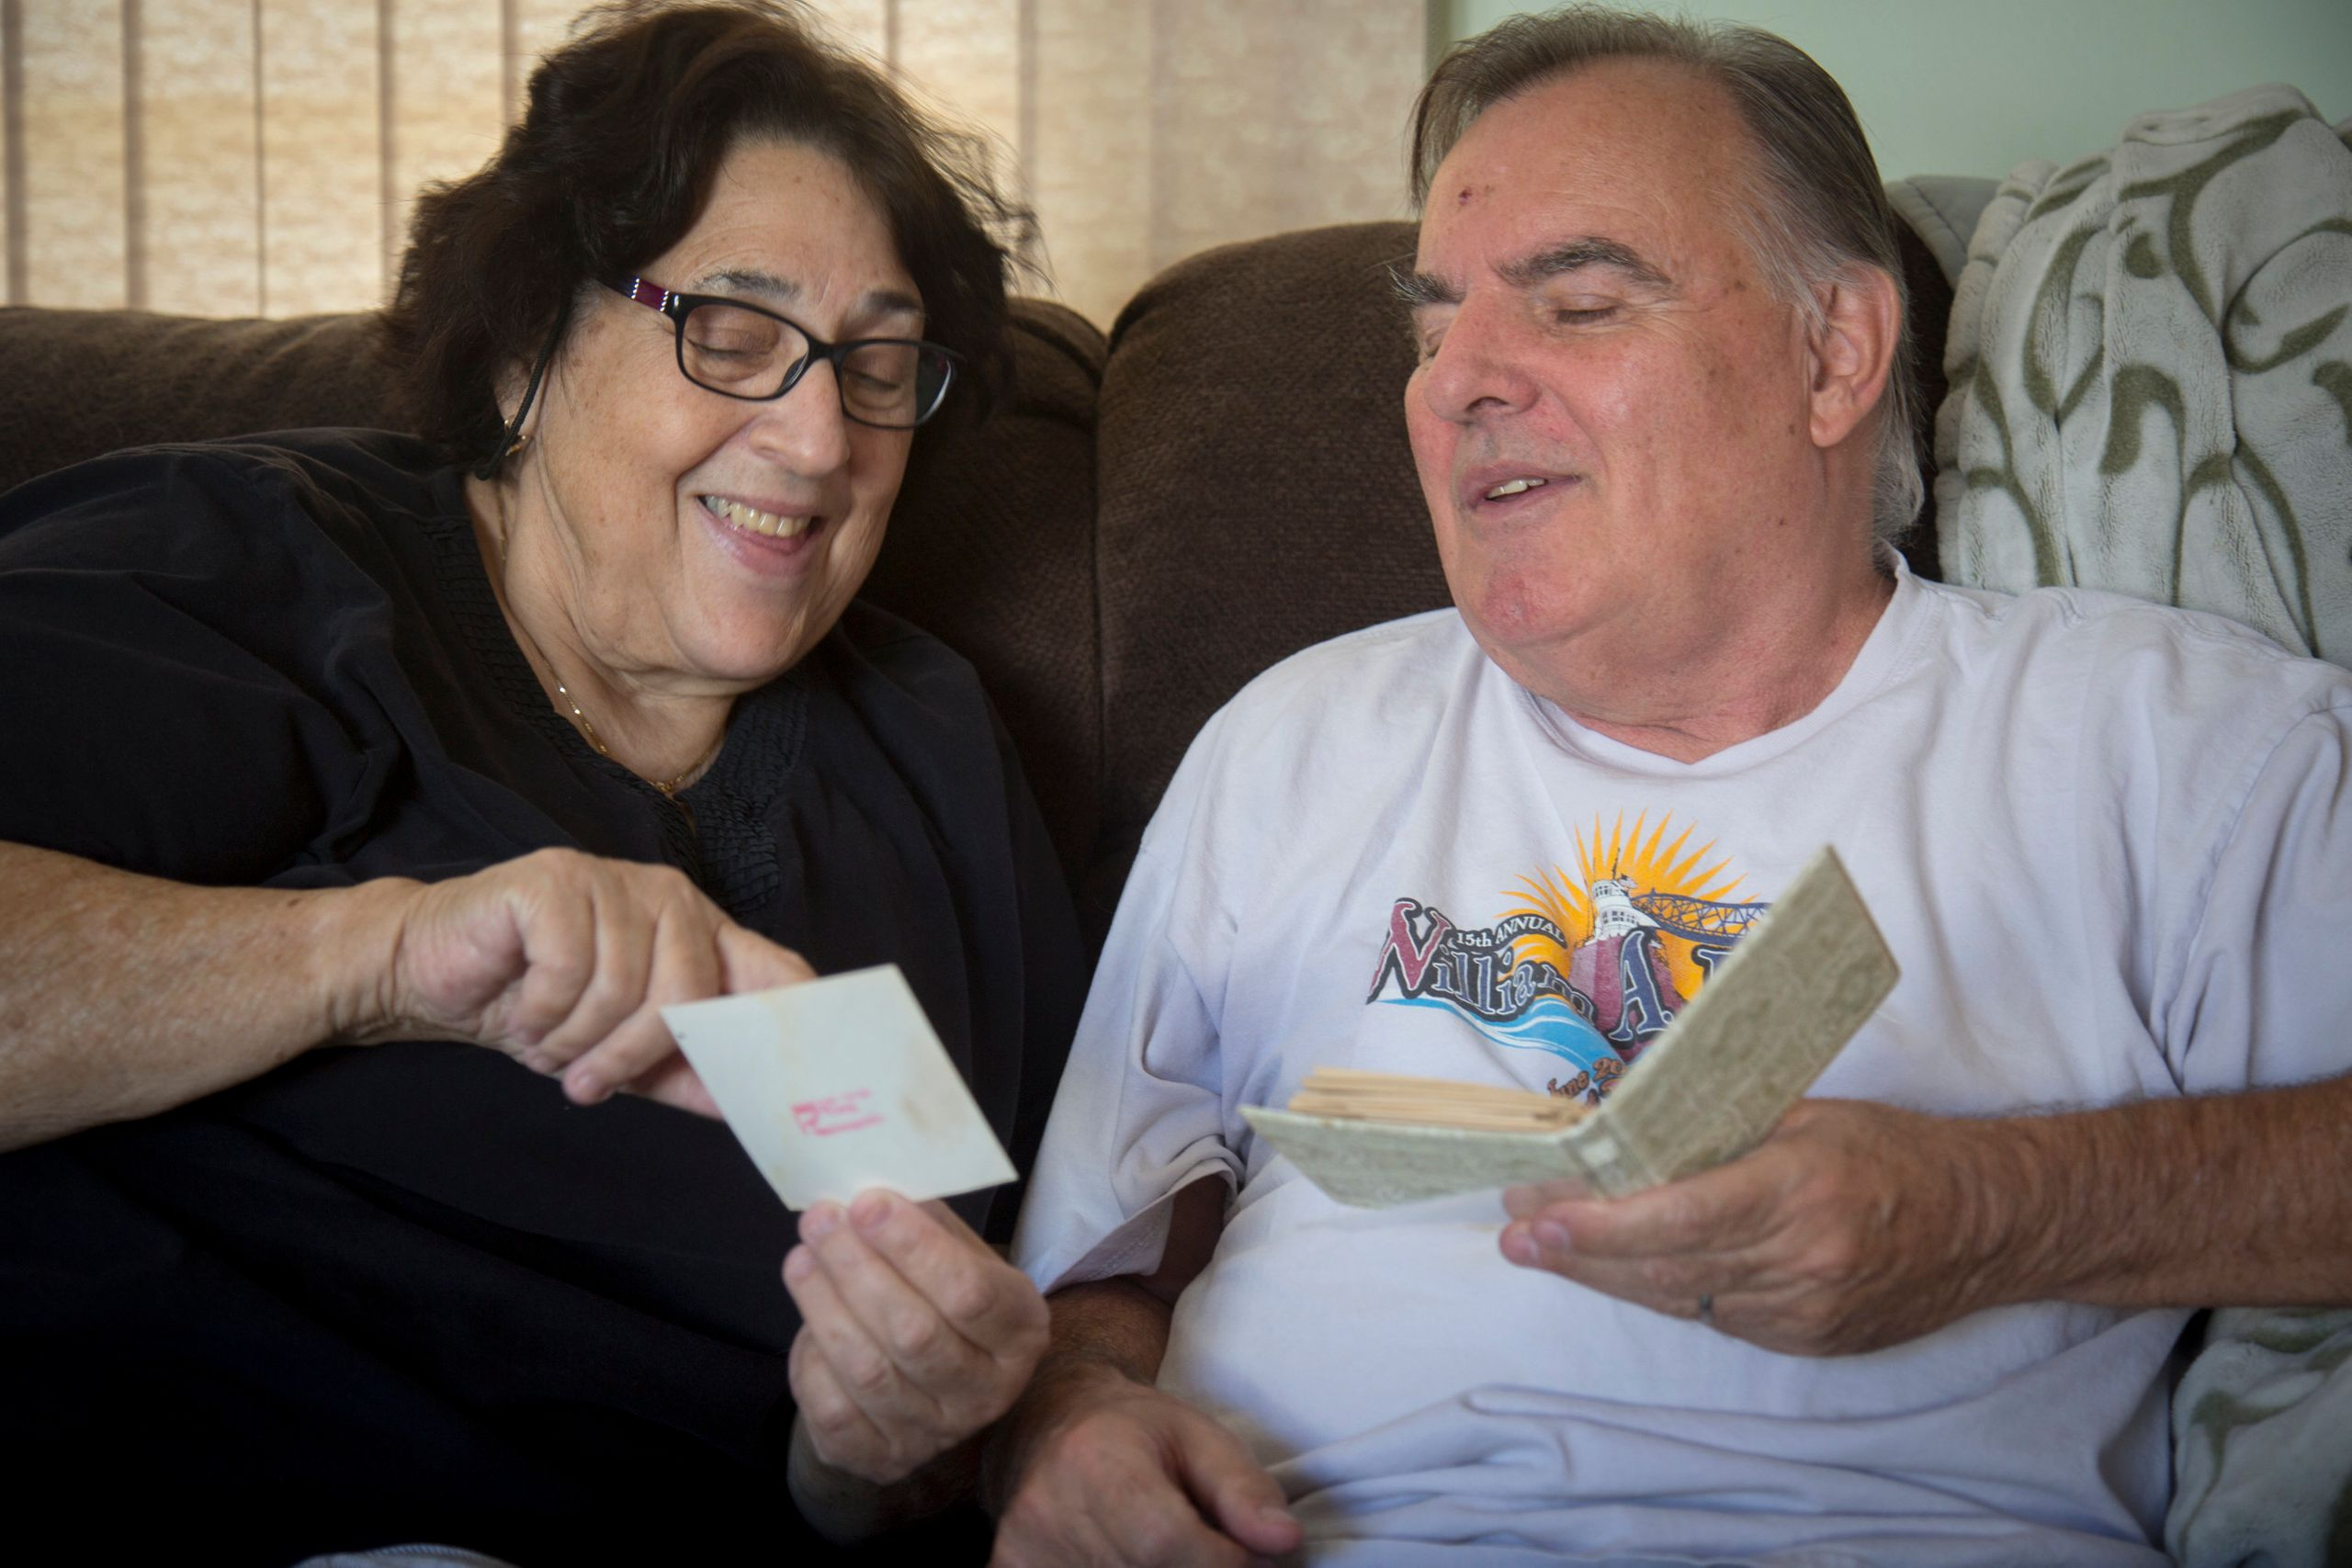 Anne and Alan Scherer stillattend movies and baseball games, as well as eventscreated for people with dementia an